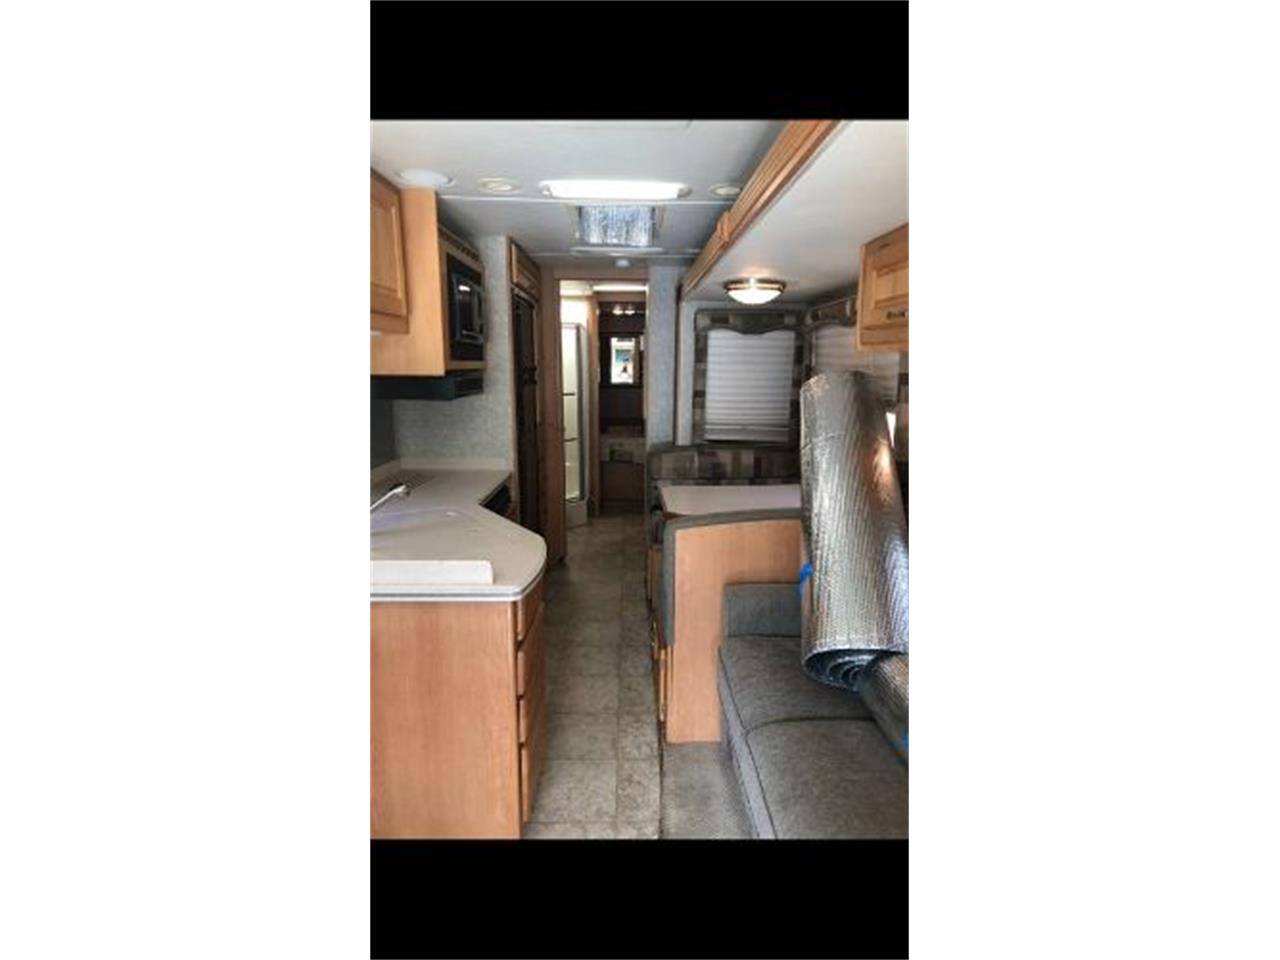 2006 Holiday Rambler Recreational Vehicle for sale in Cadillac, MI – photo 12